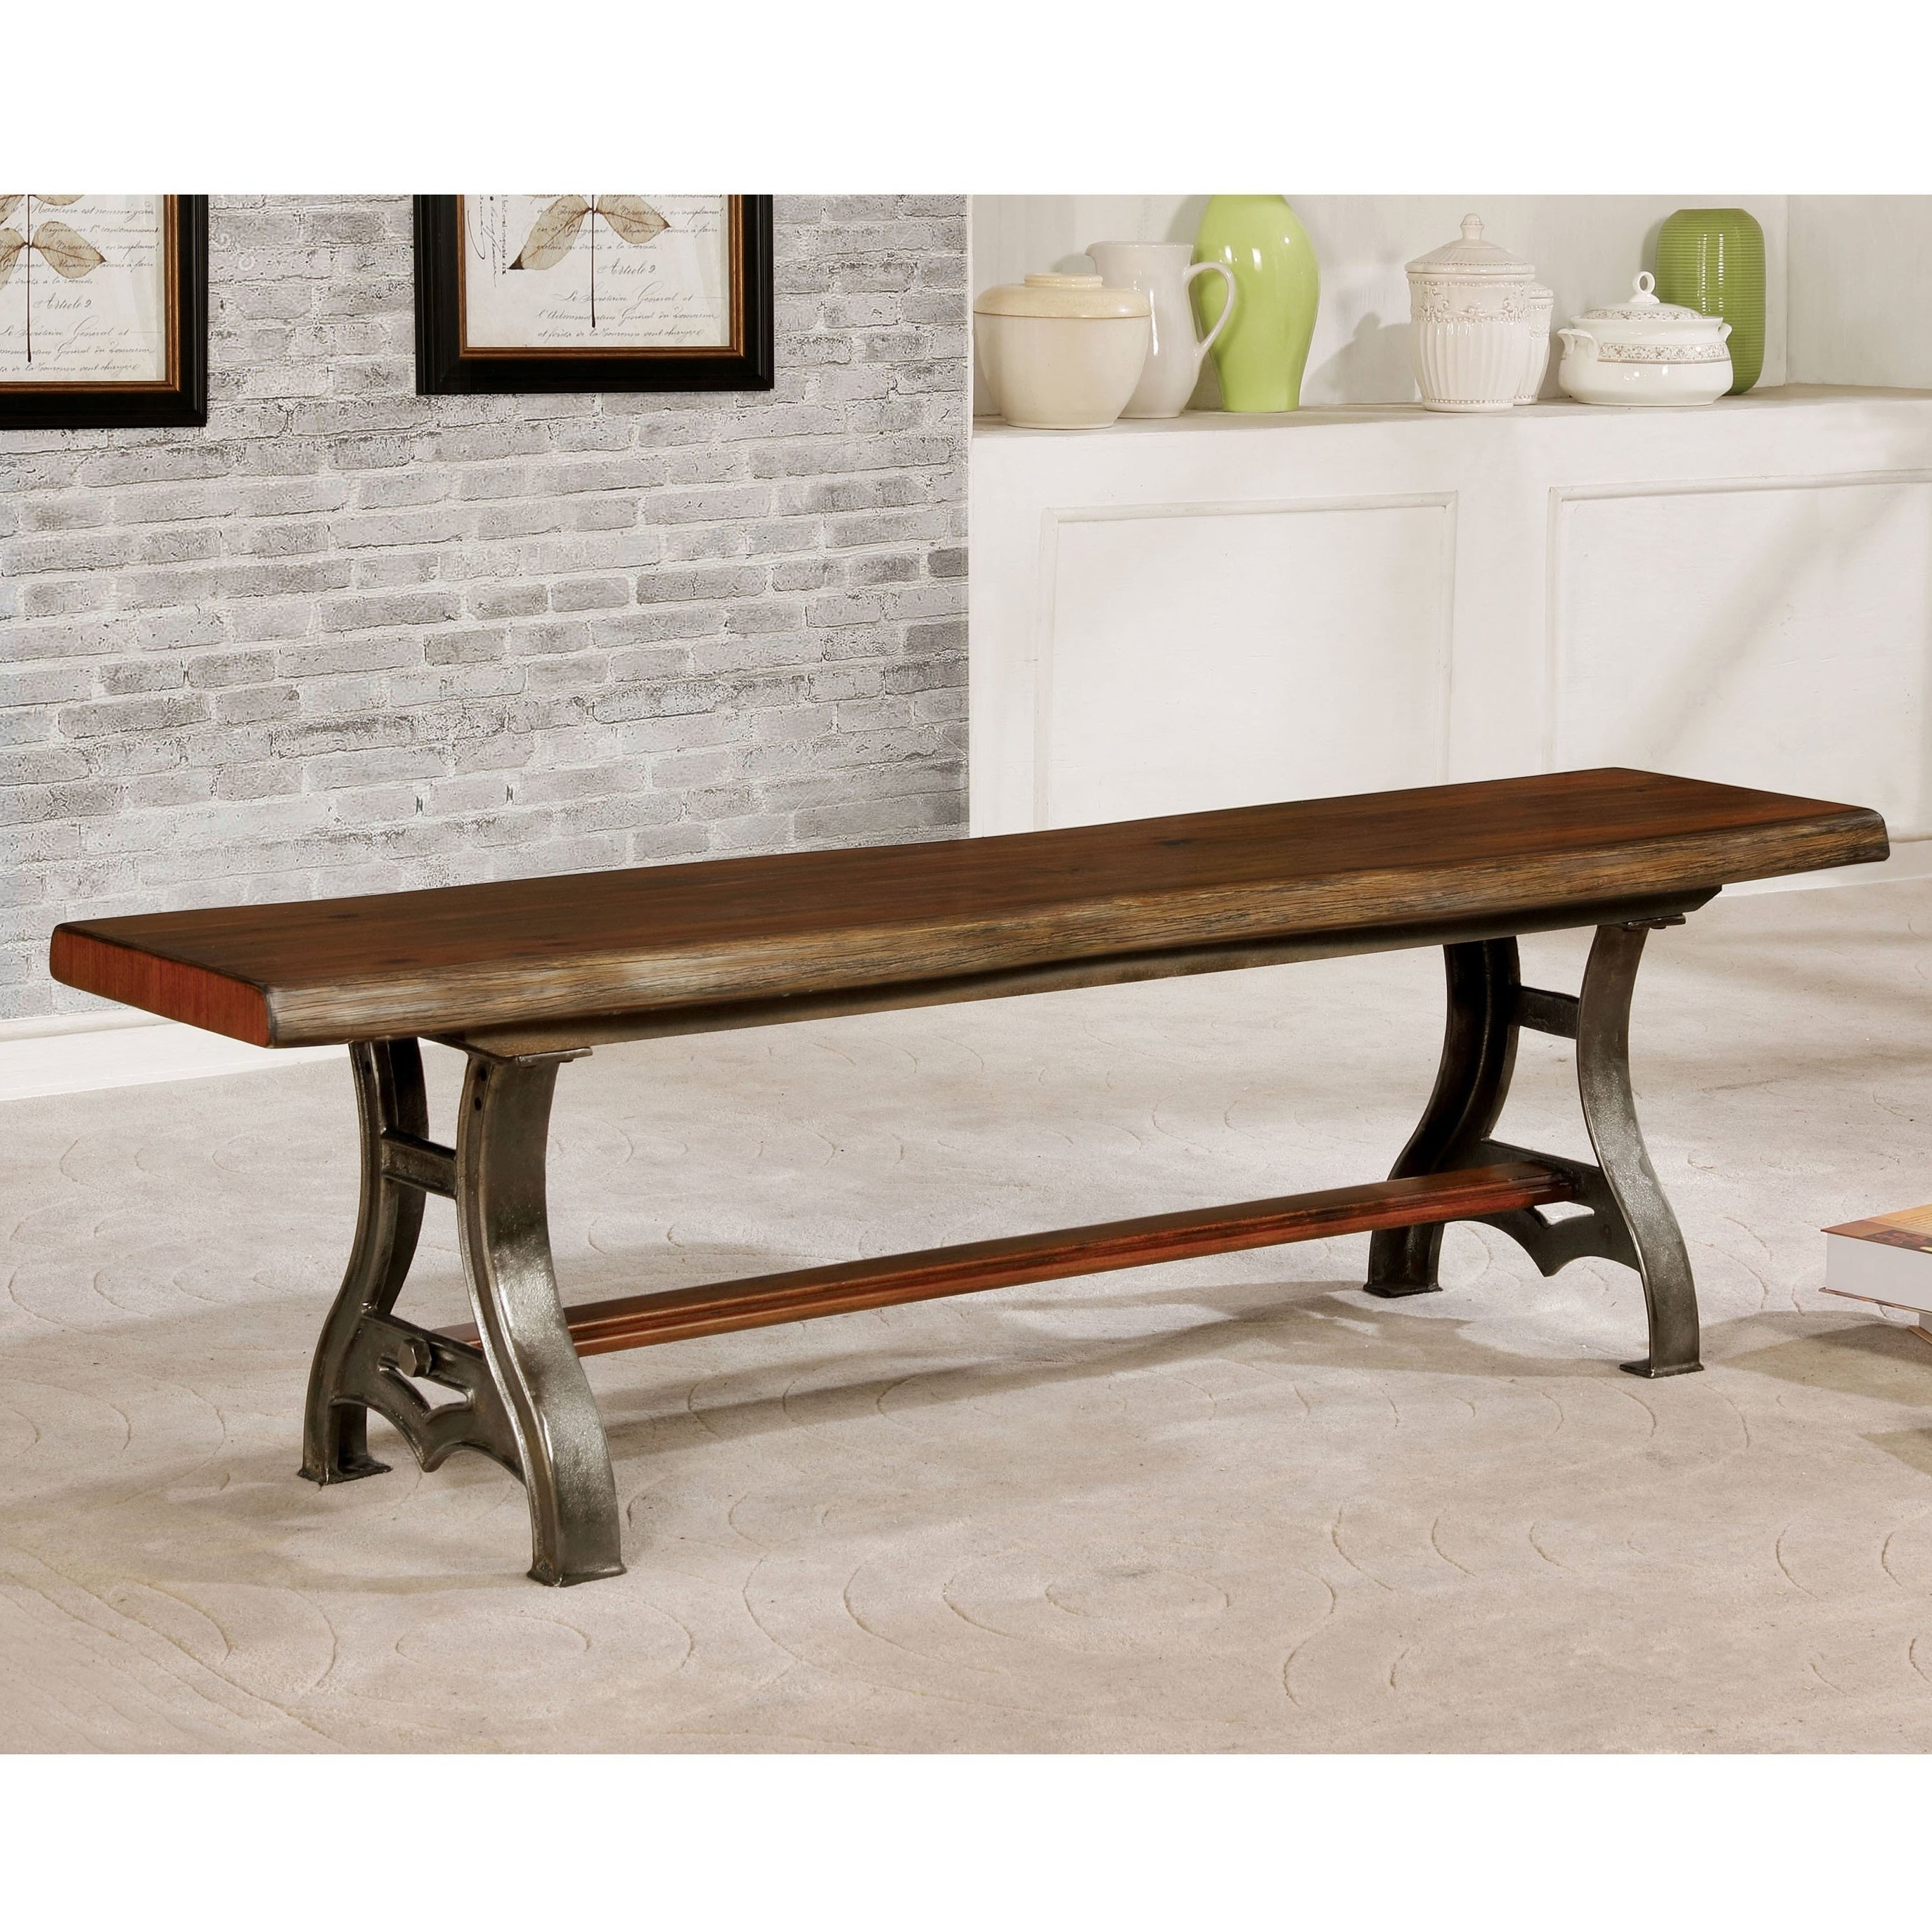 Pleasing The Gray Barn Maiden Castle Industrial Brown Cherry Dining Bench Uwap Interior Chair Design Uwaporg